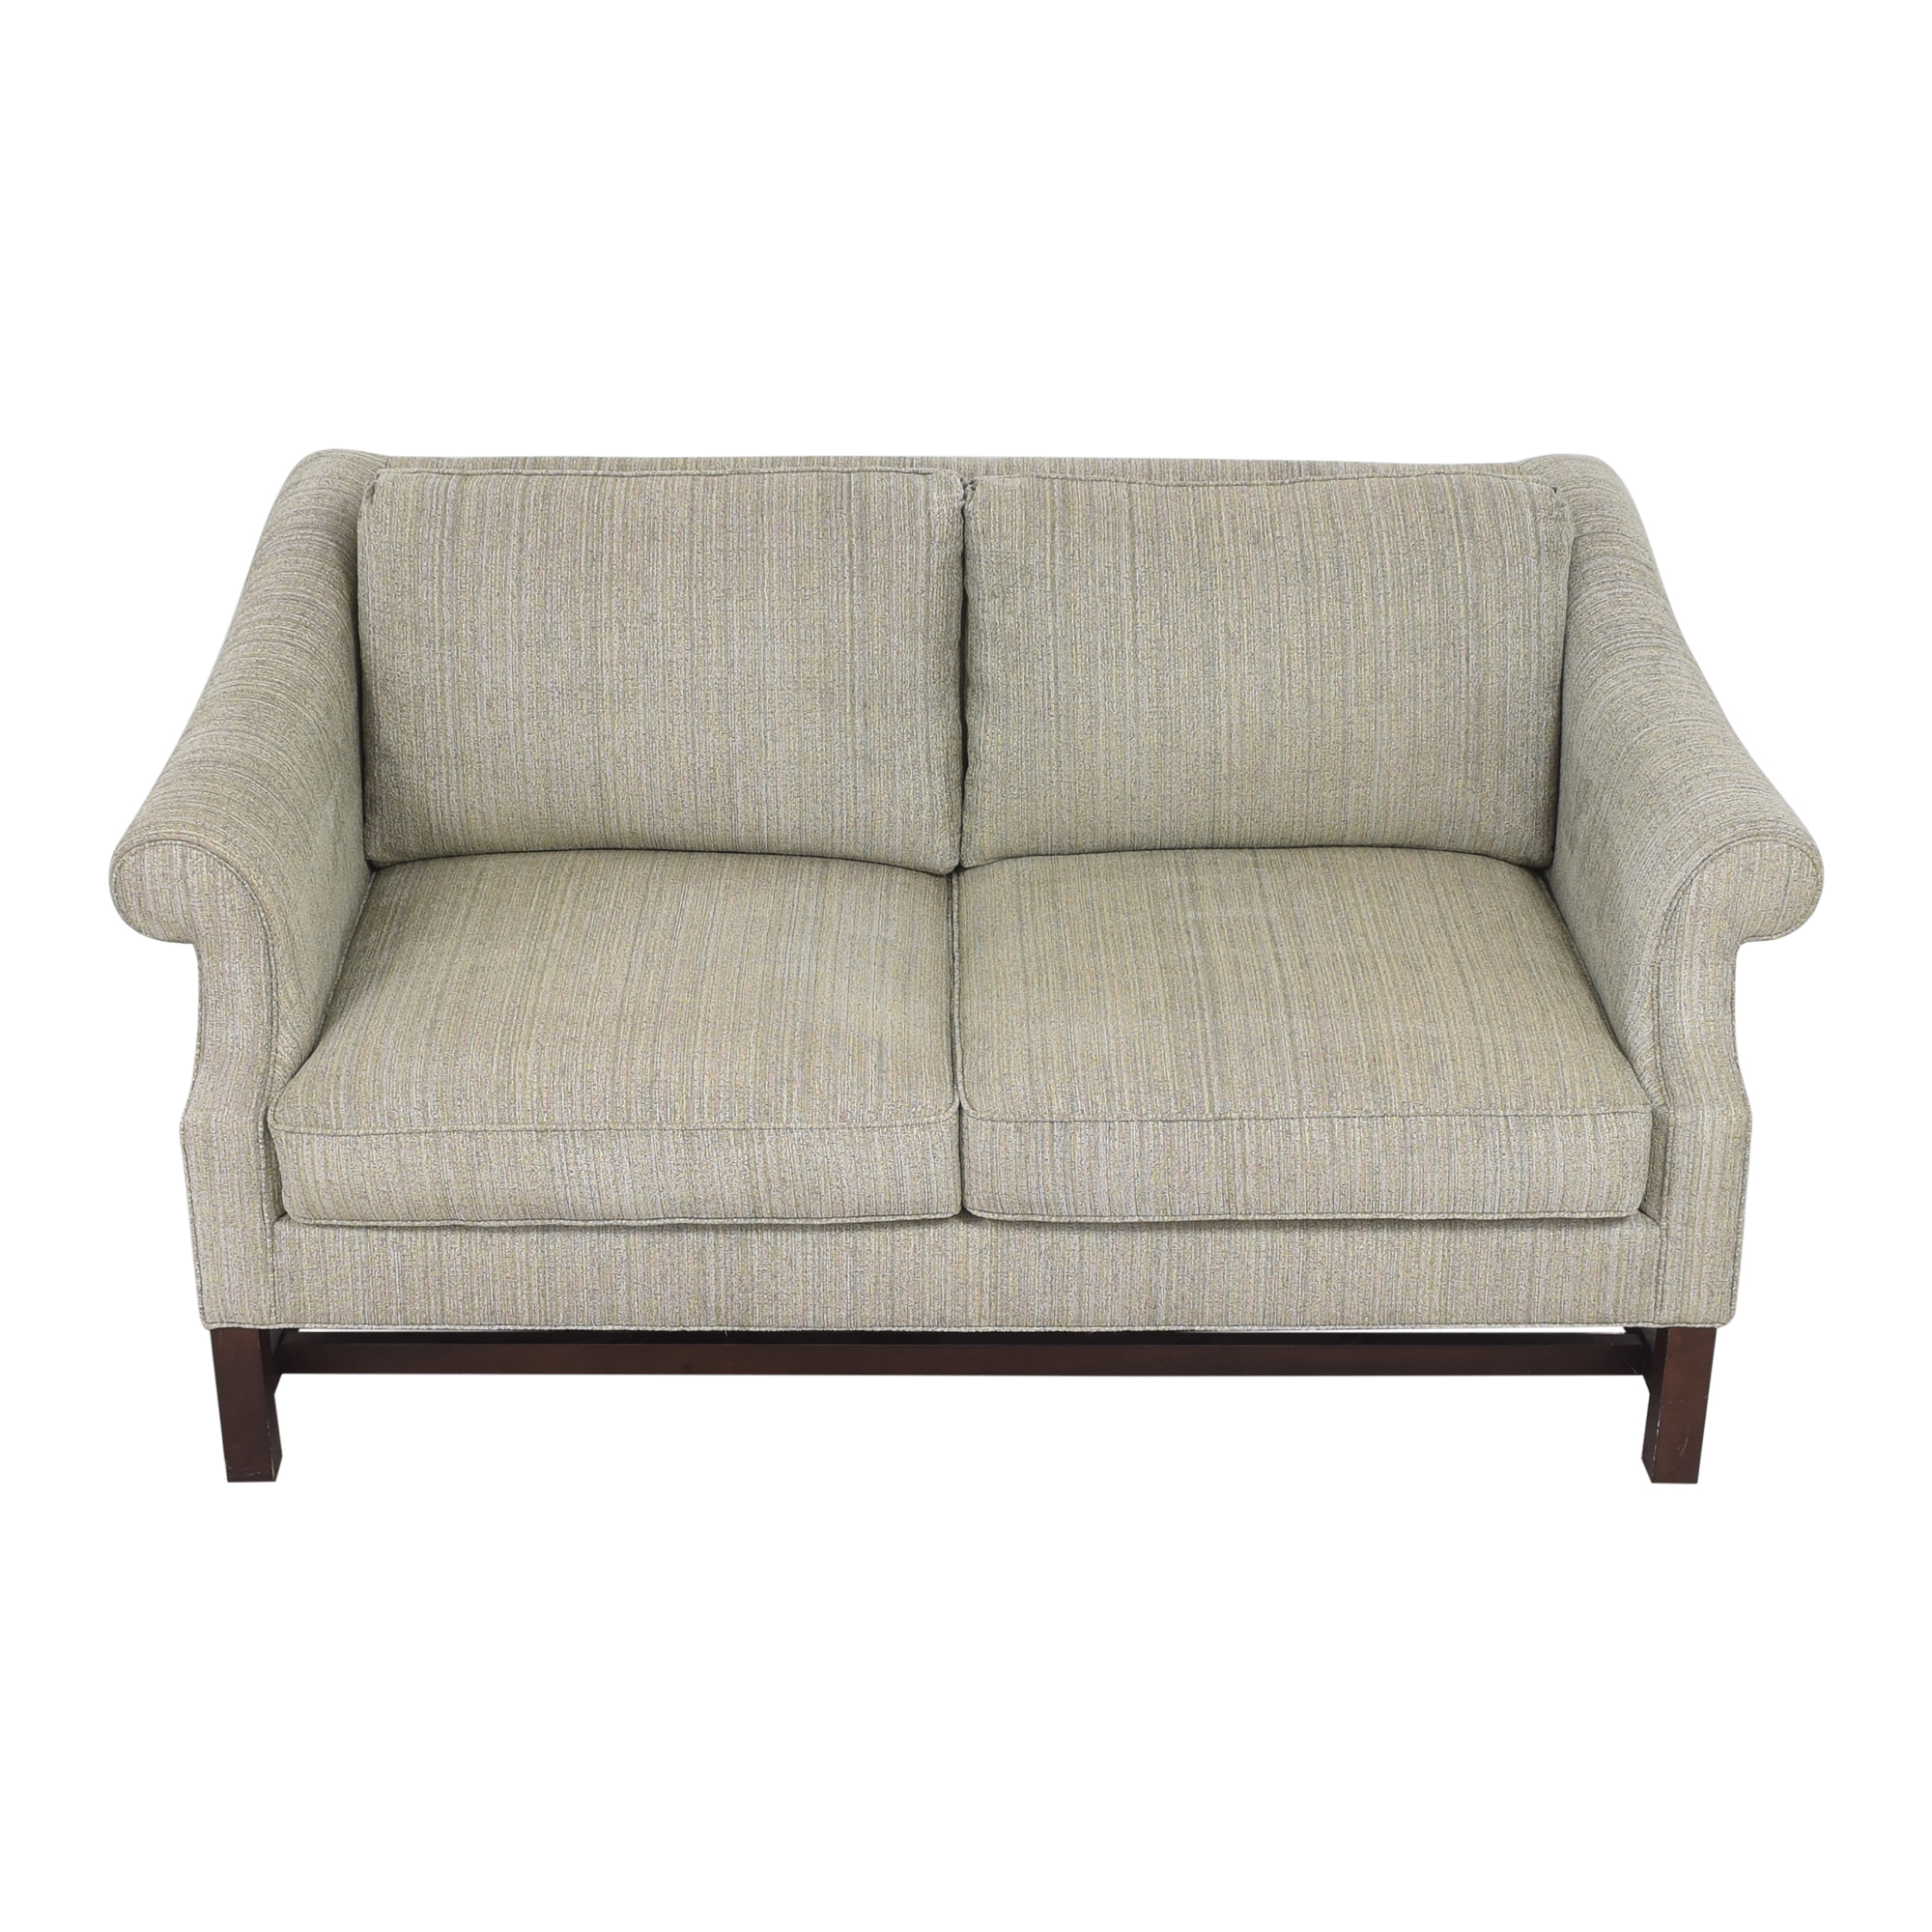 shop Bernhardt Bernhardt Martha Stewart Signature Collection Sofa online